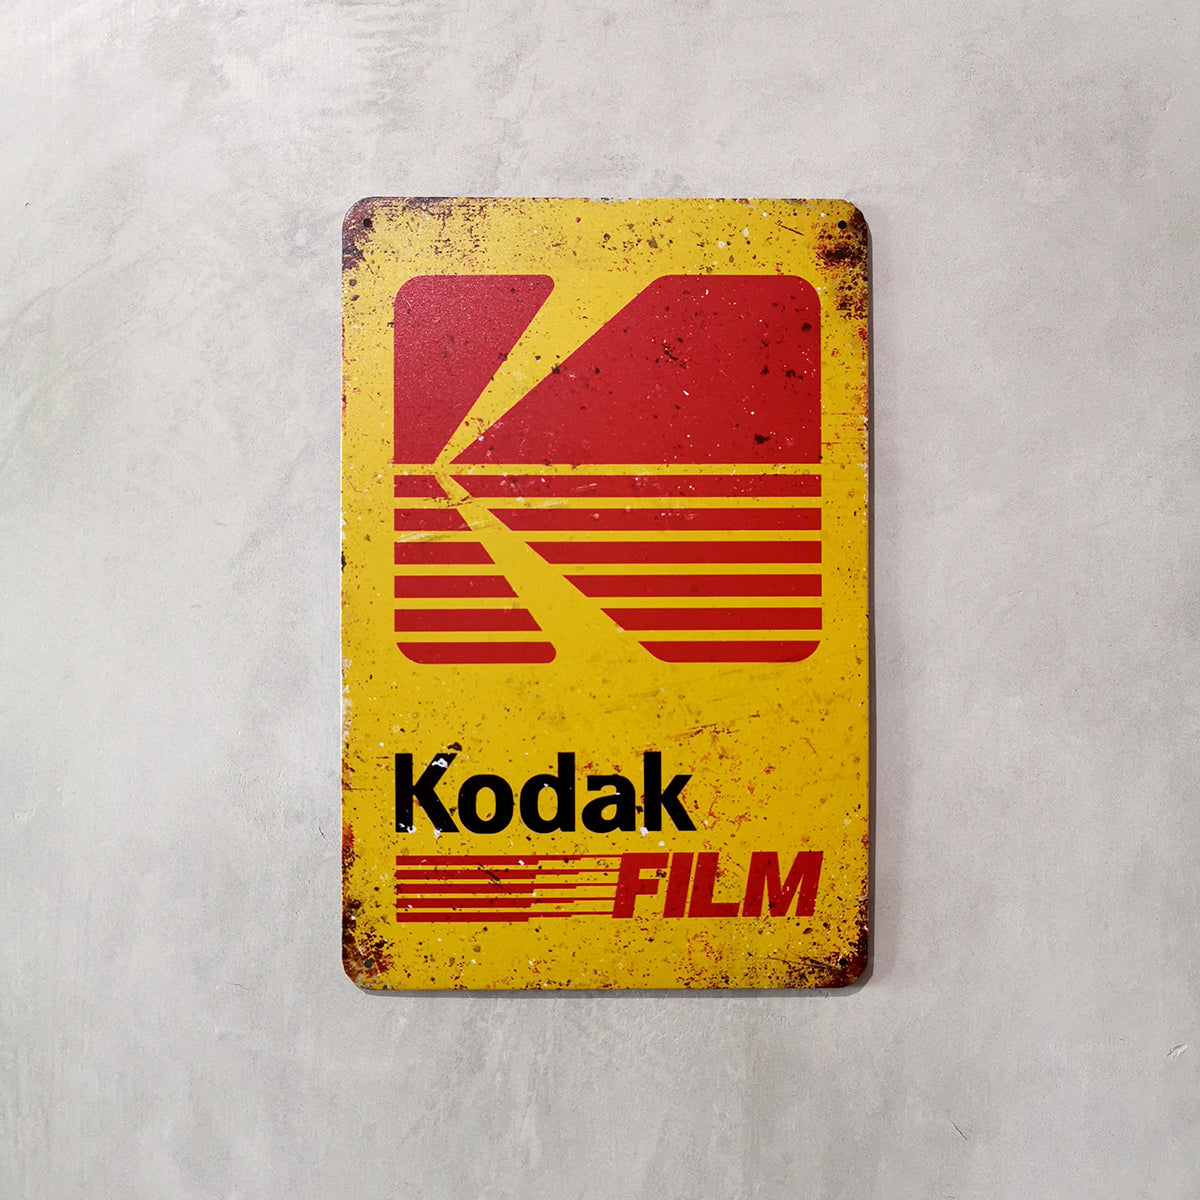 Tin Sign - Kodak Film[product_tag] Singapore - 8storeytree